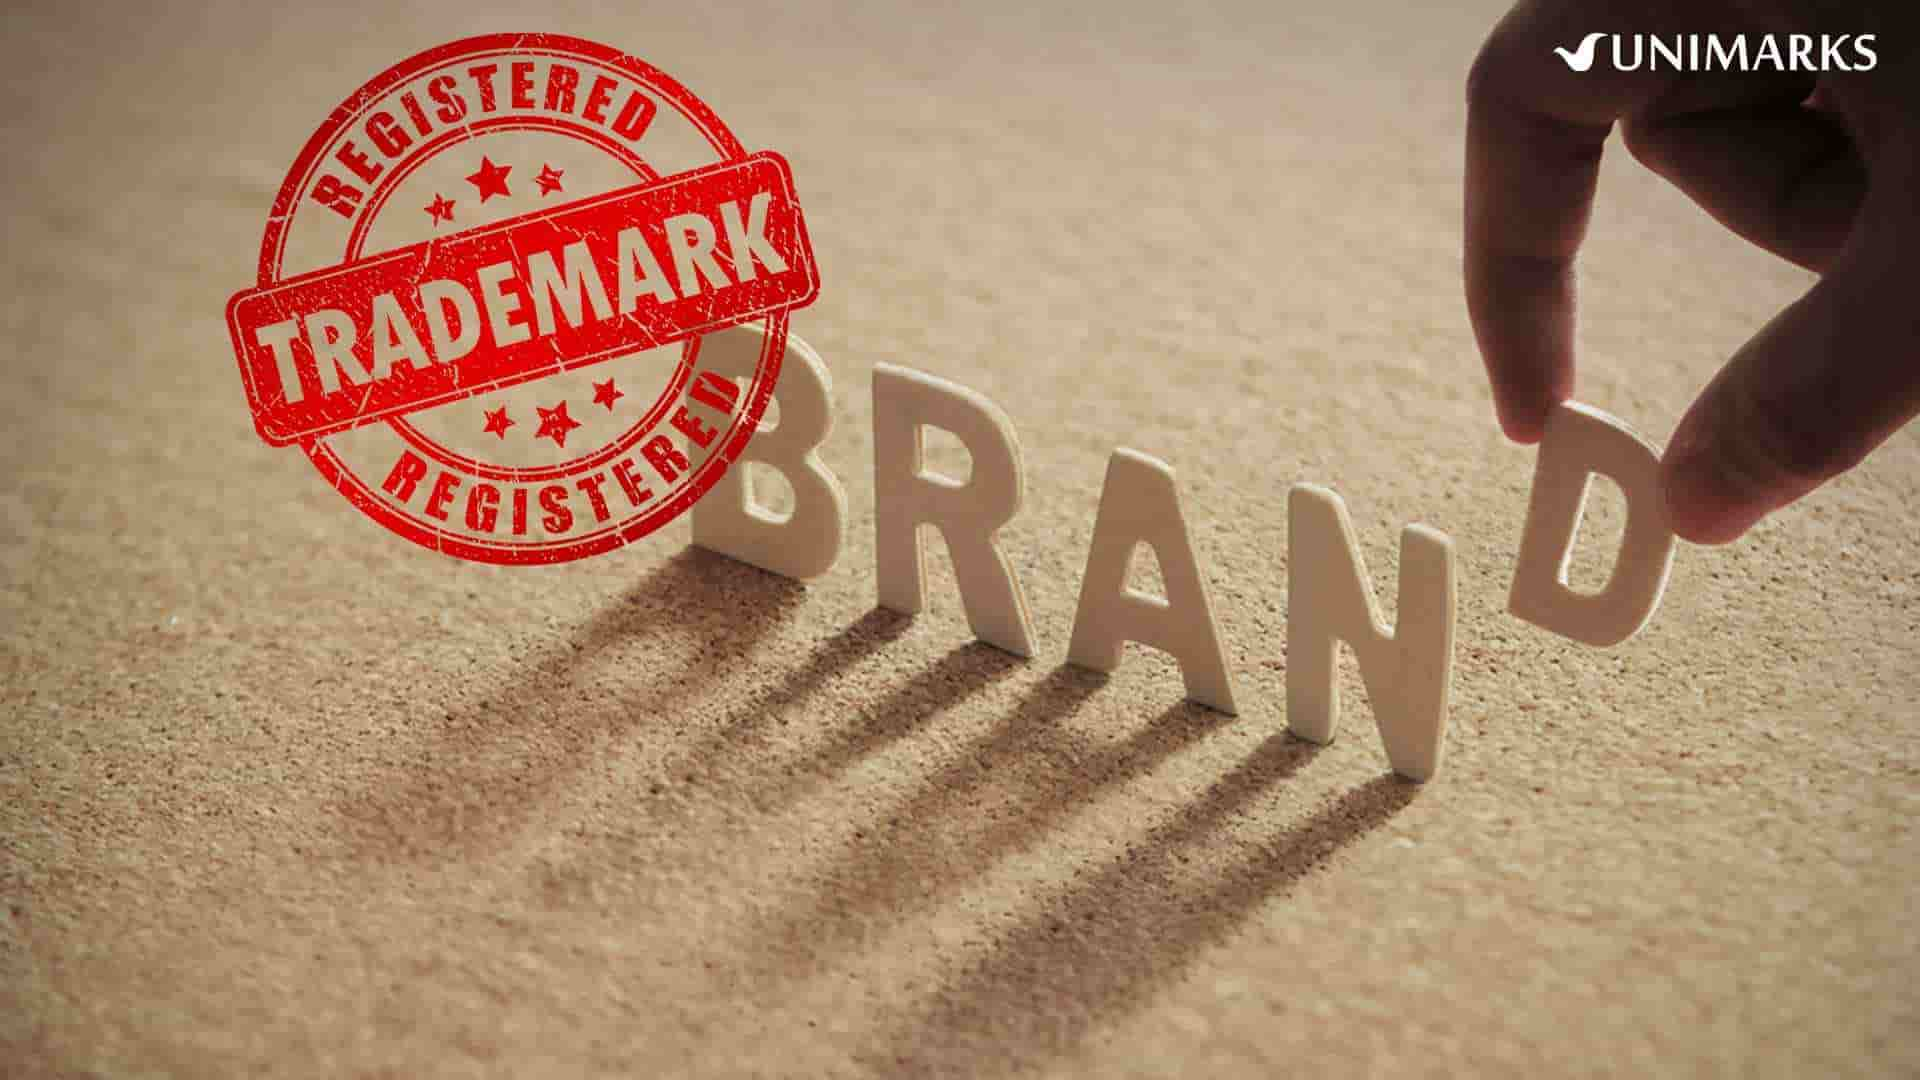 7-points-to-win-brand-name-registration